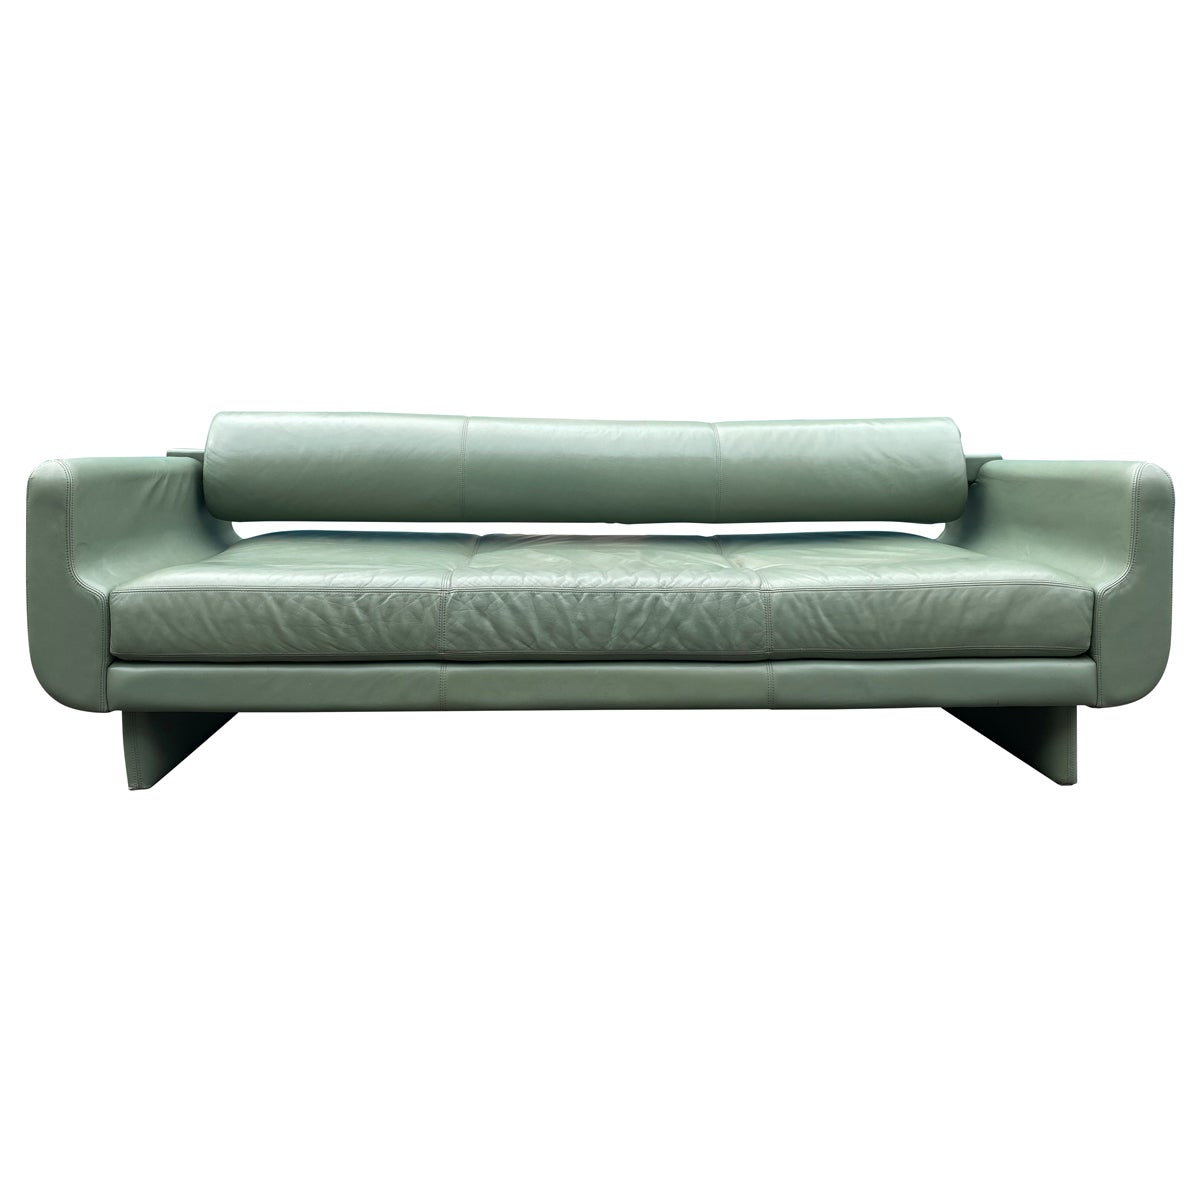 Beautiful Leather Matinee Daybed Sofa by Vladimir Kagan Sage Green Leather